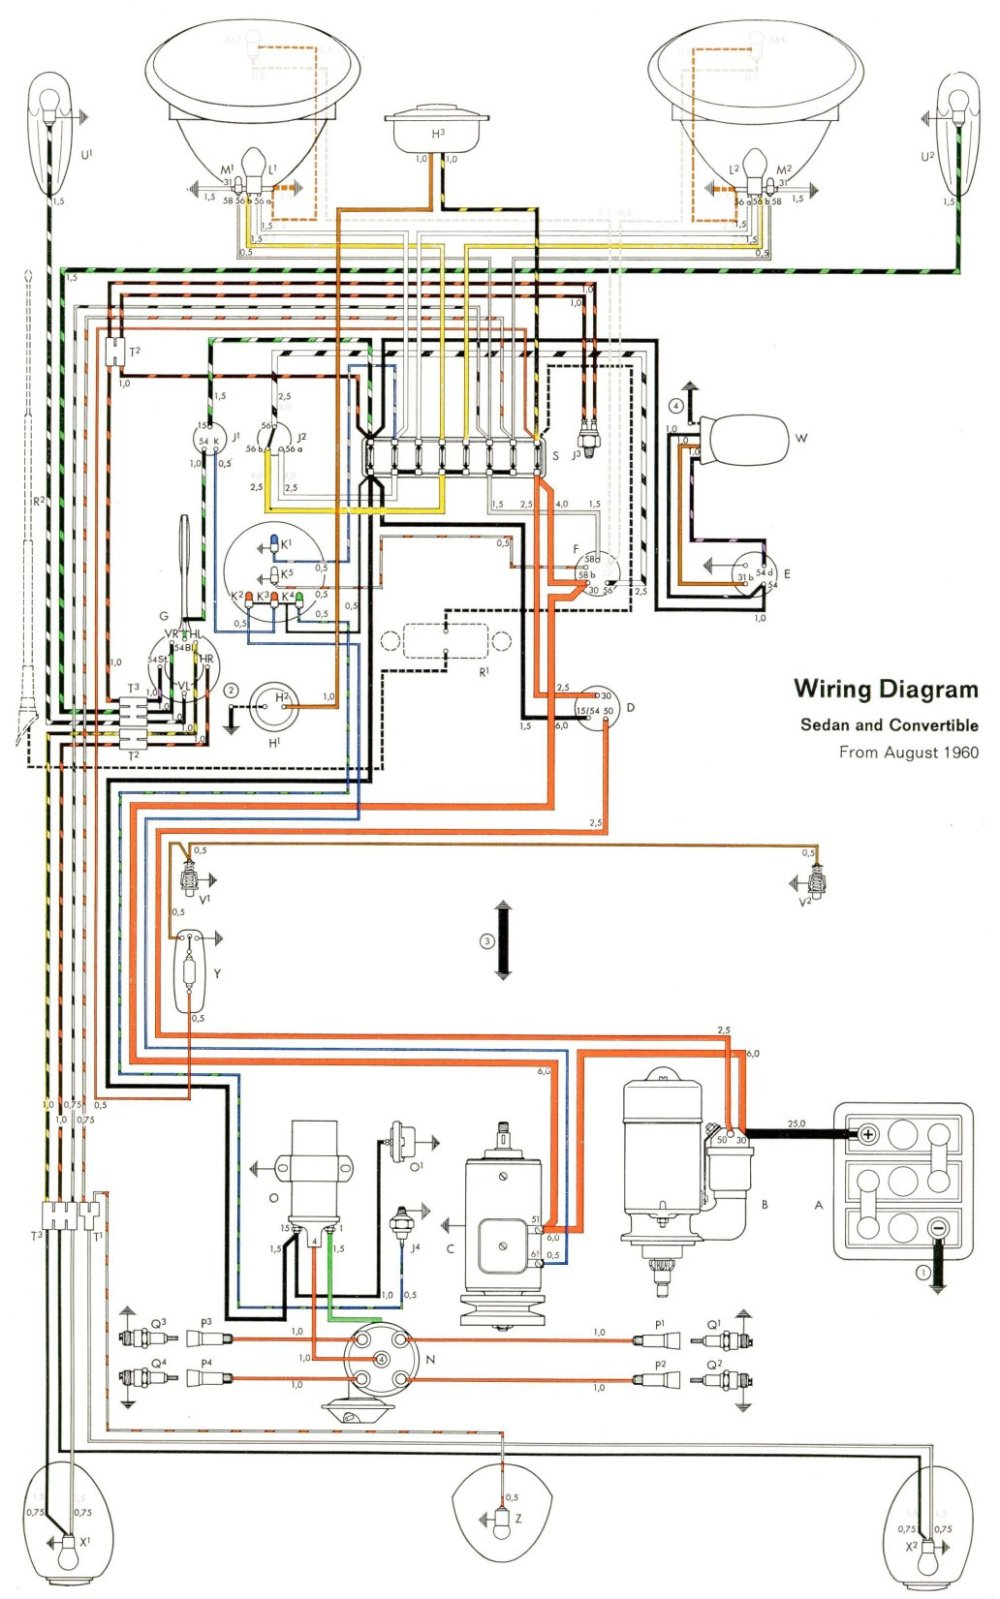 medium resolution of 74 vw engine diagram blog wiring diagram 74 vw engine diagram